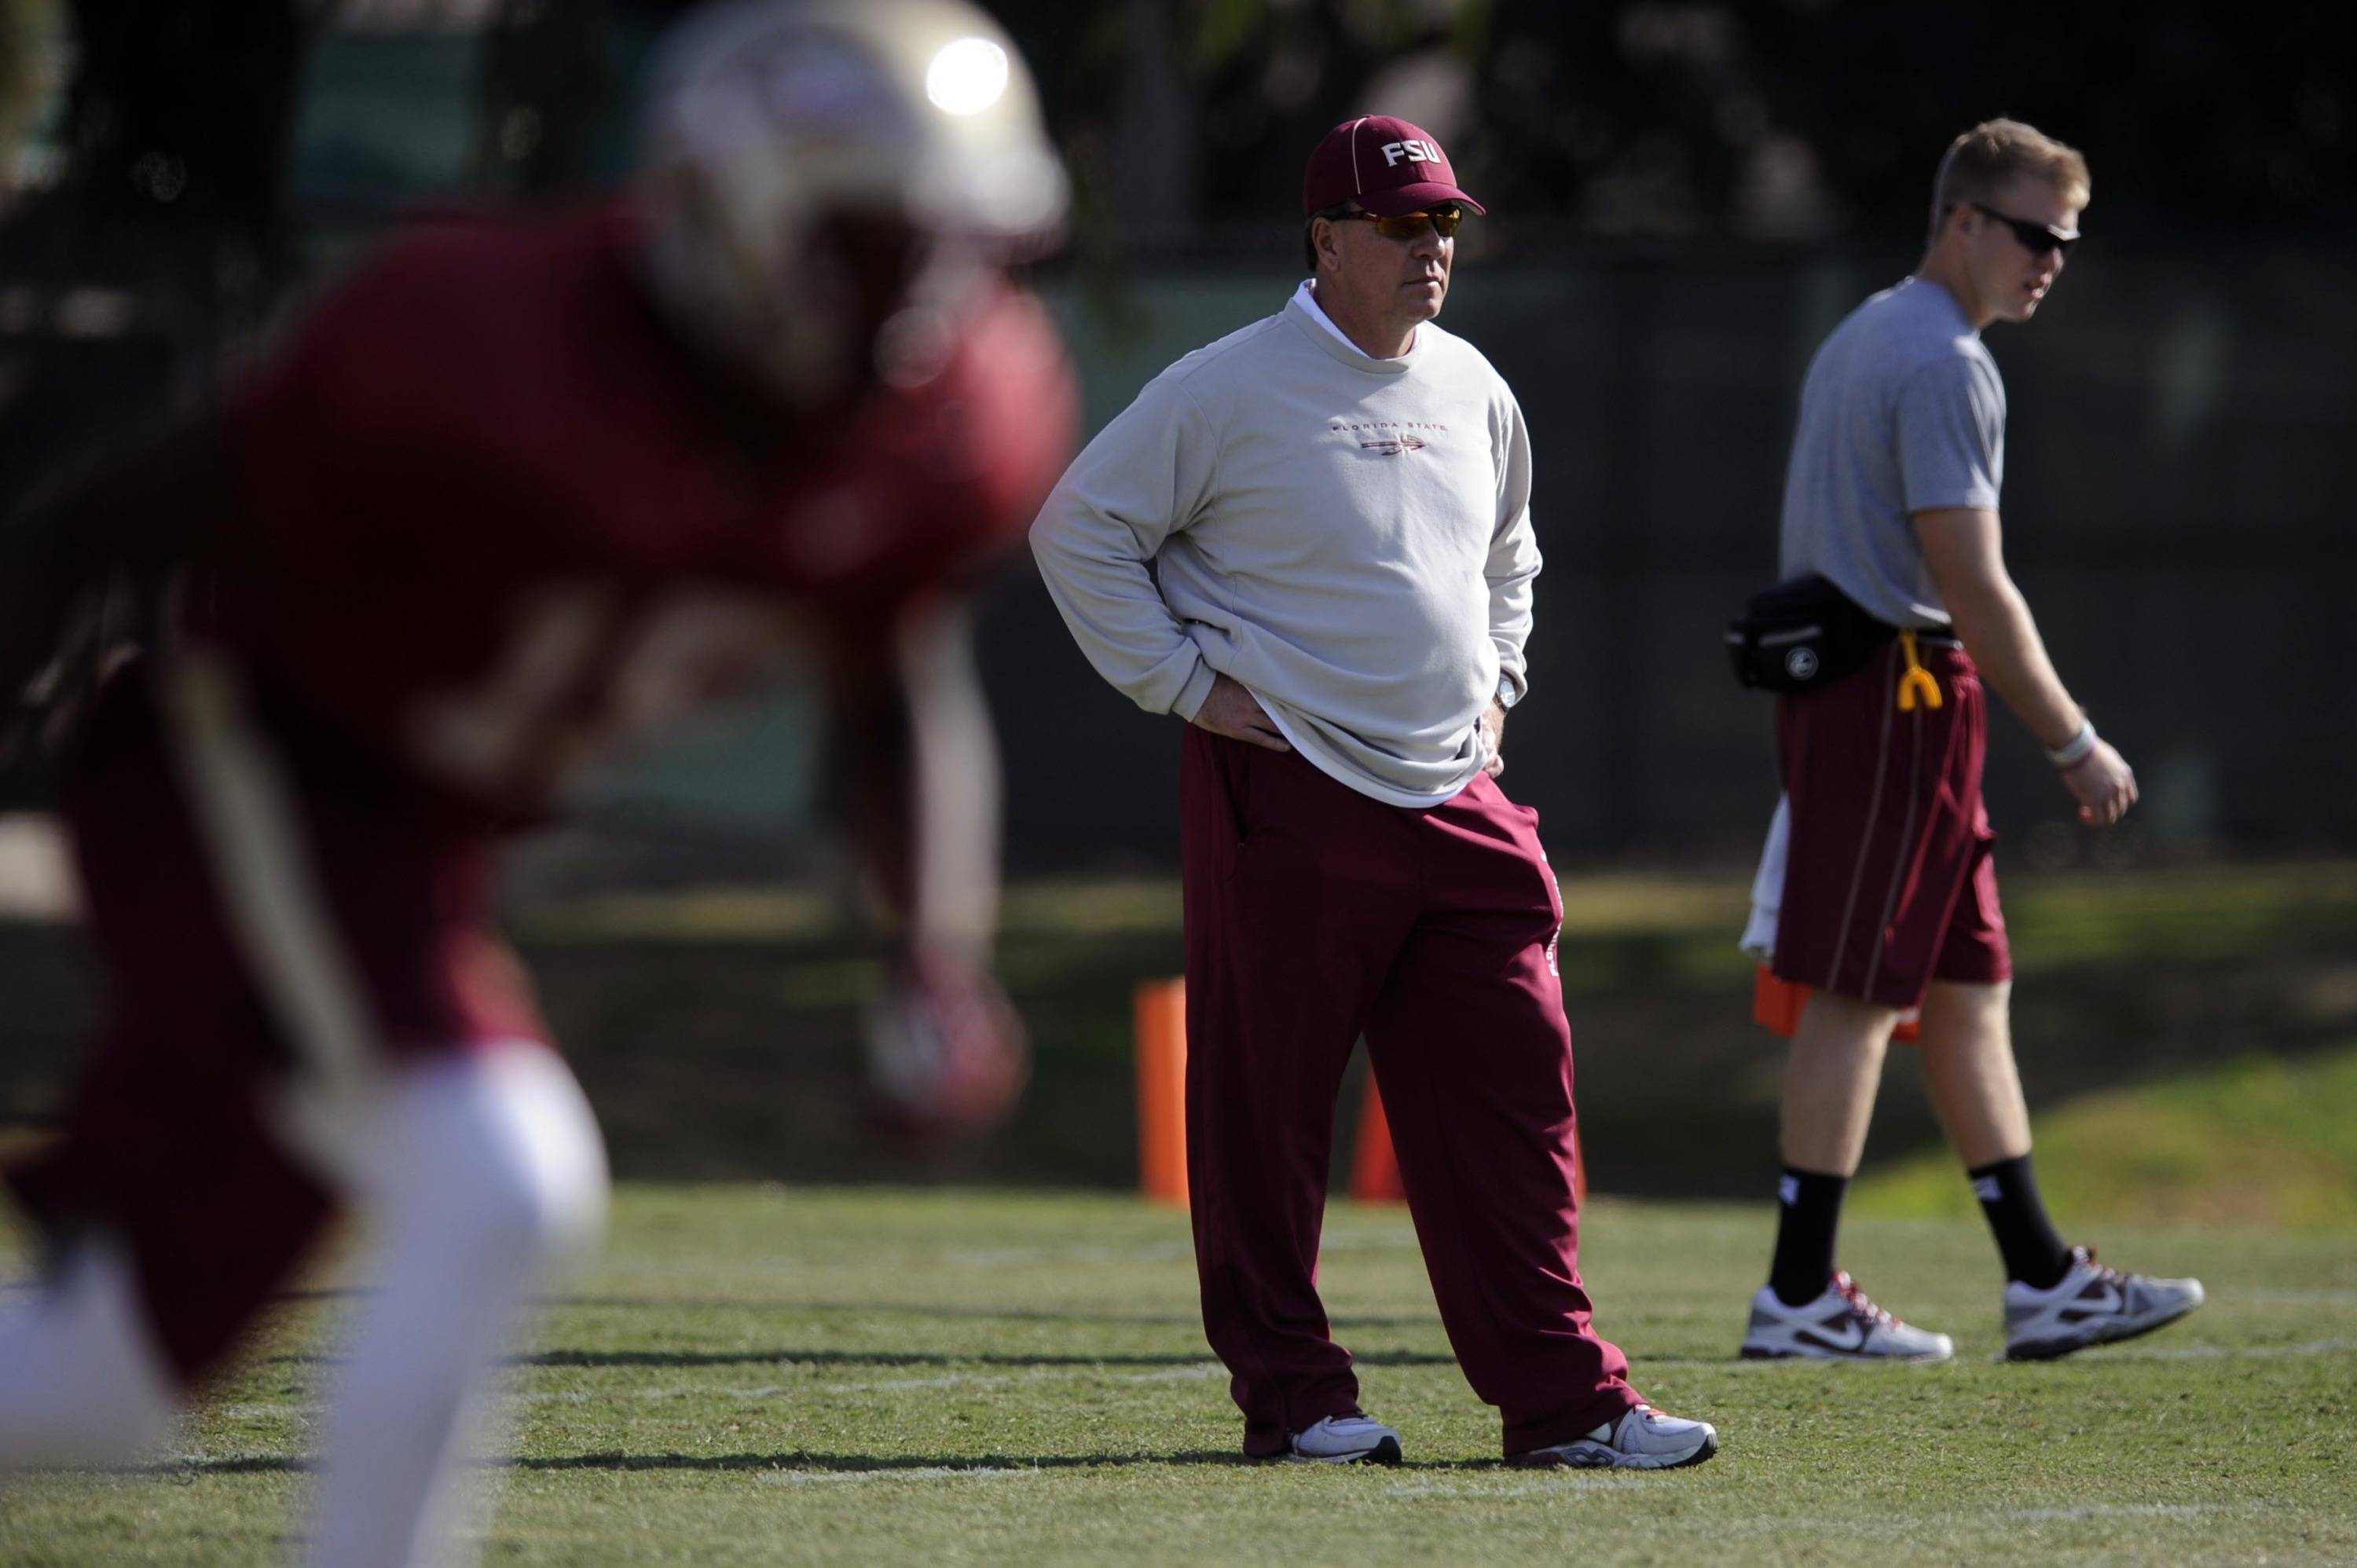 Jan 3, 2014; Orange, CA, USA; Florida State Seminoles head coach Jimbo Fisher during practice for the BCS National Championship football game against the Auburn Tigers at Orange Coast College. Mandatory Credit: Kelvin Kuo-USA TODAY Sports